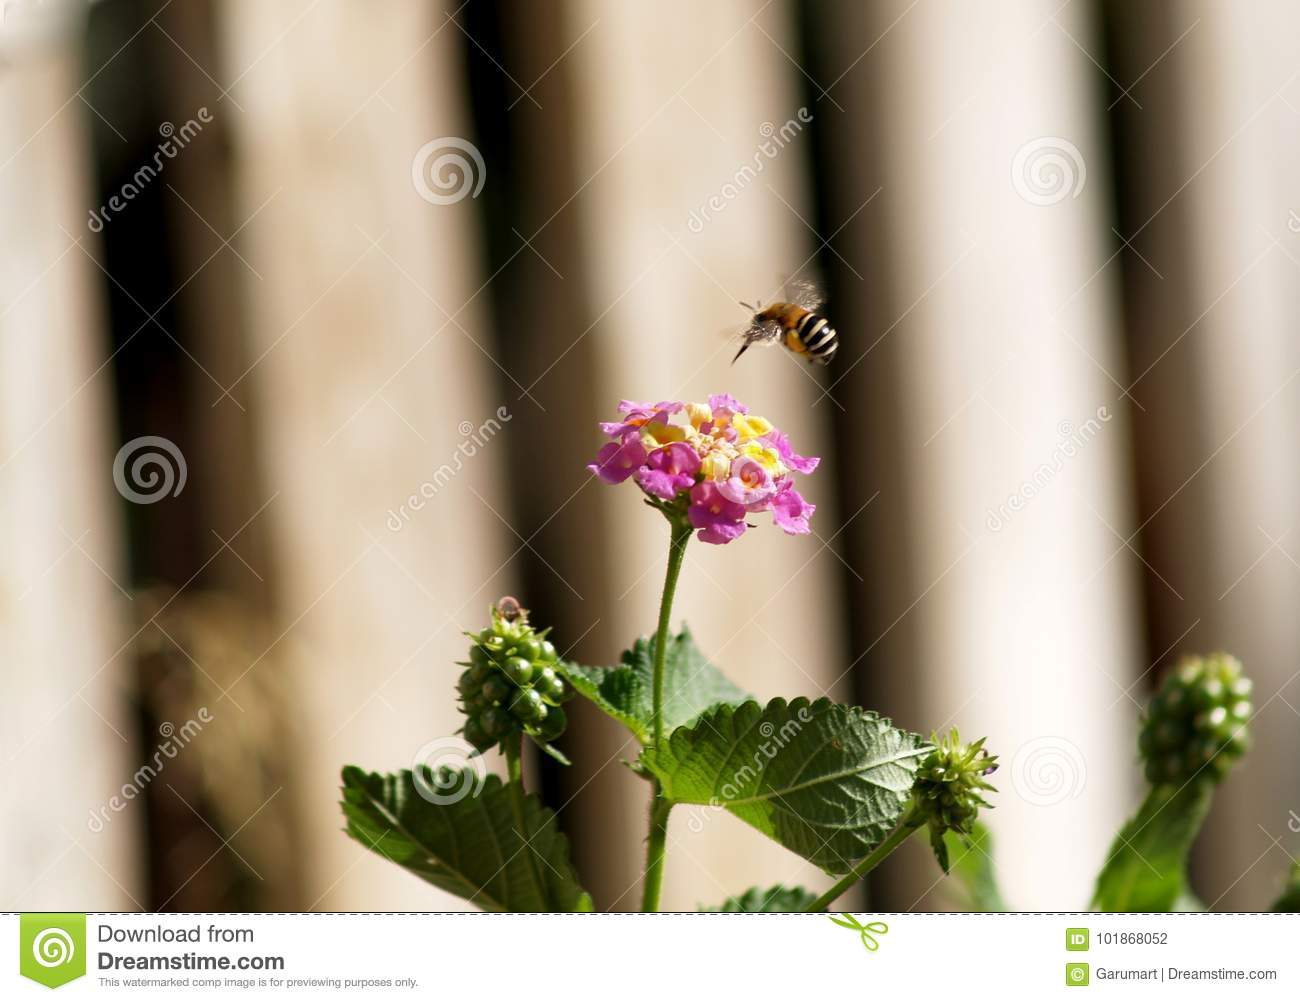 Bee flying over a flower